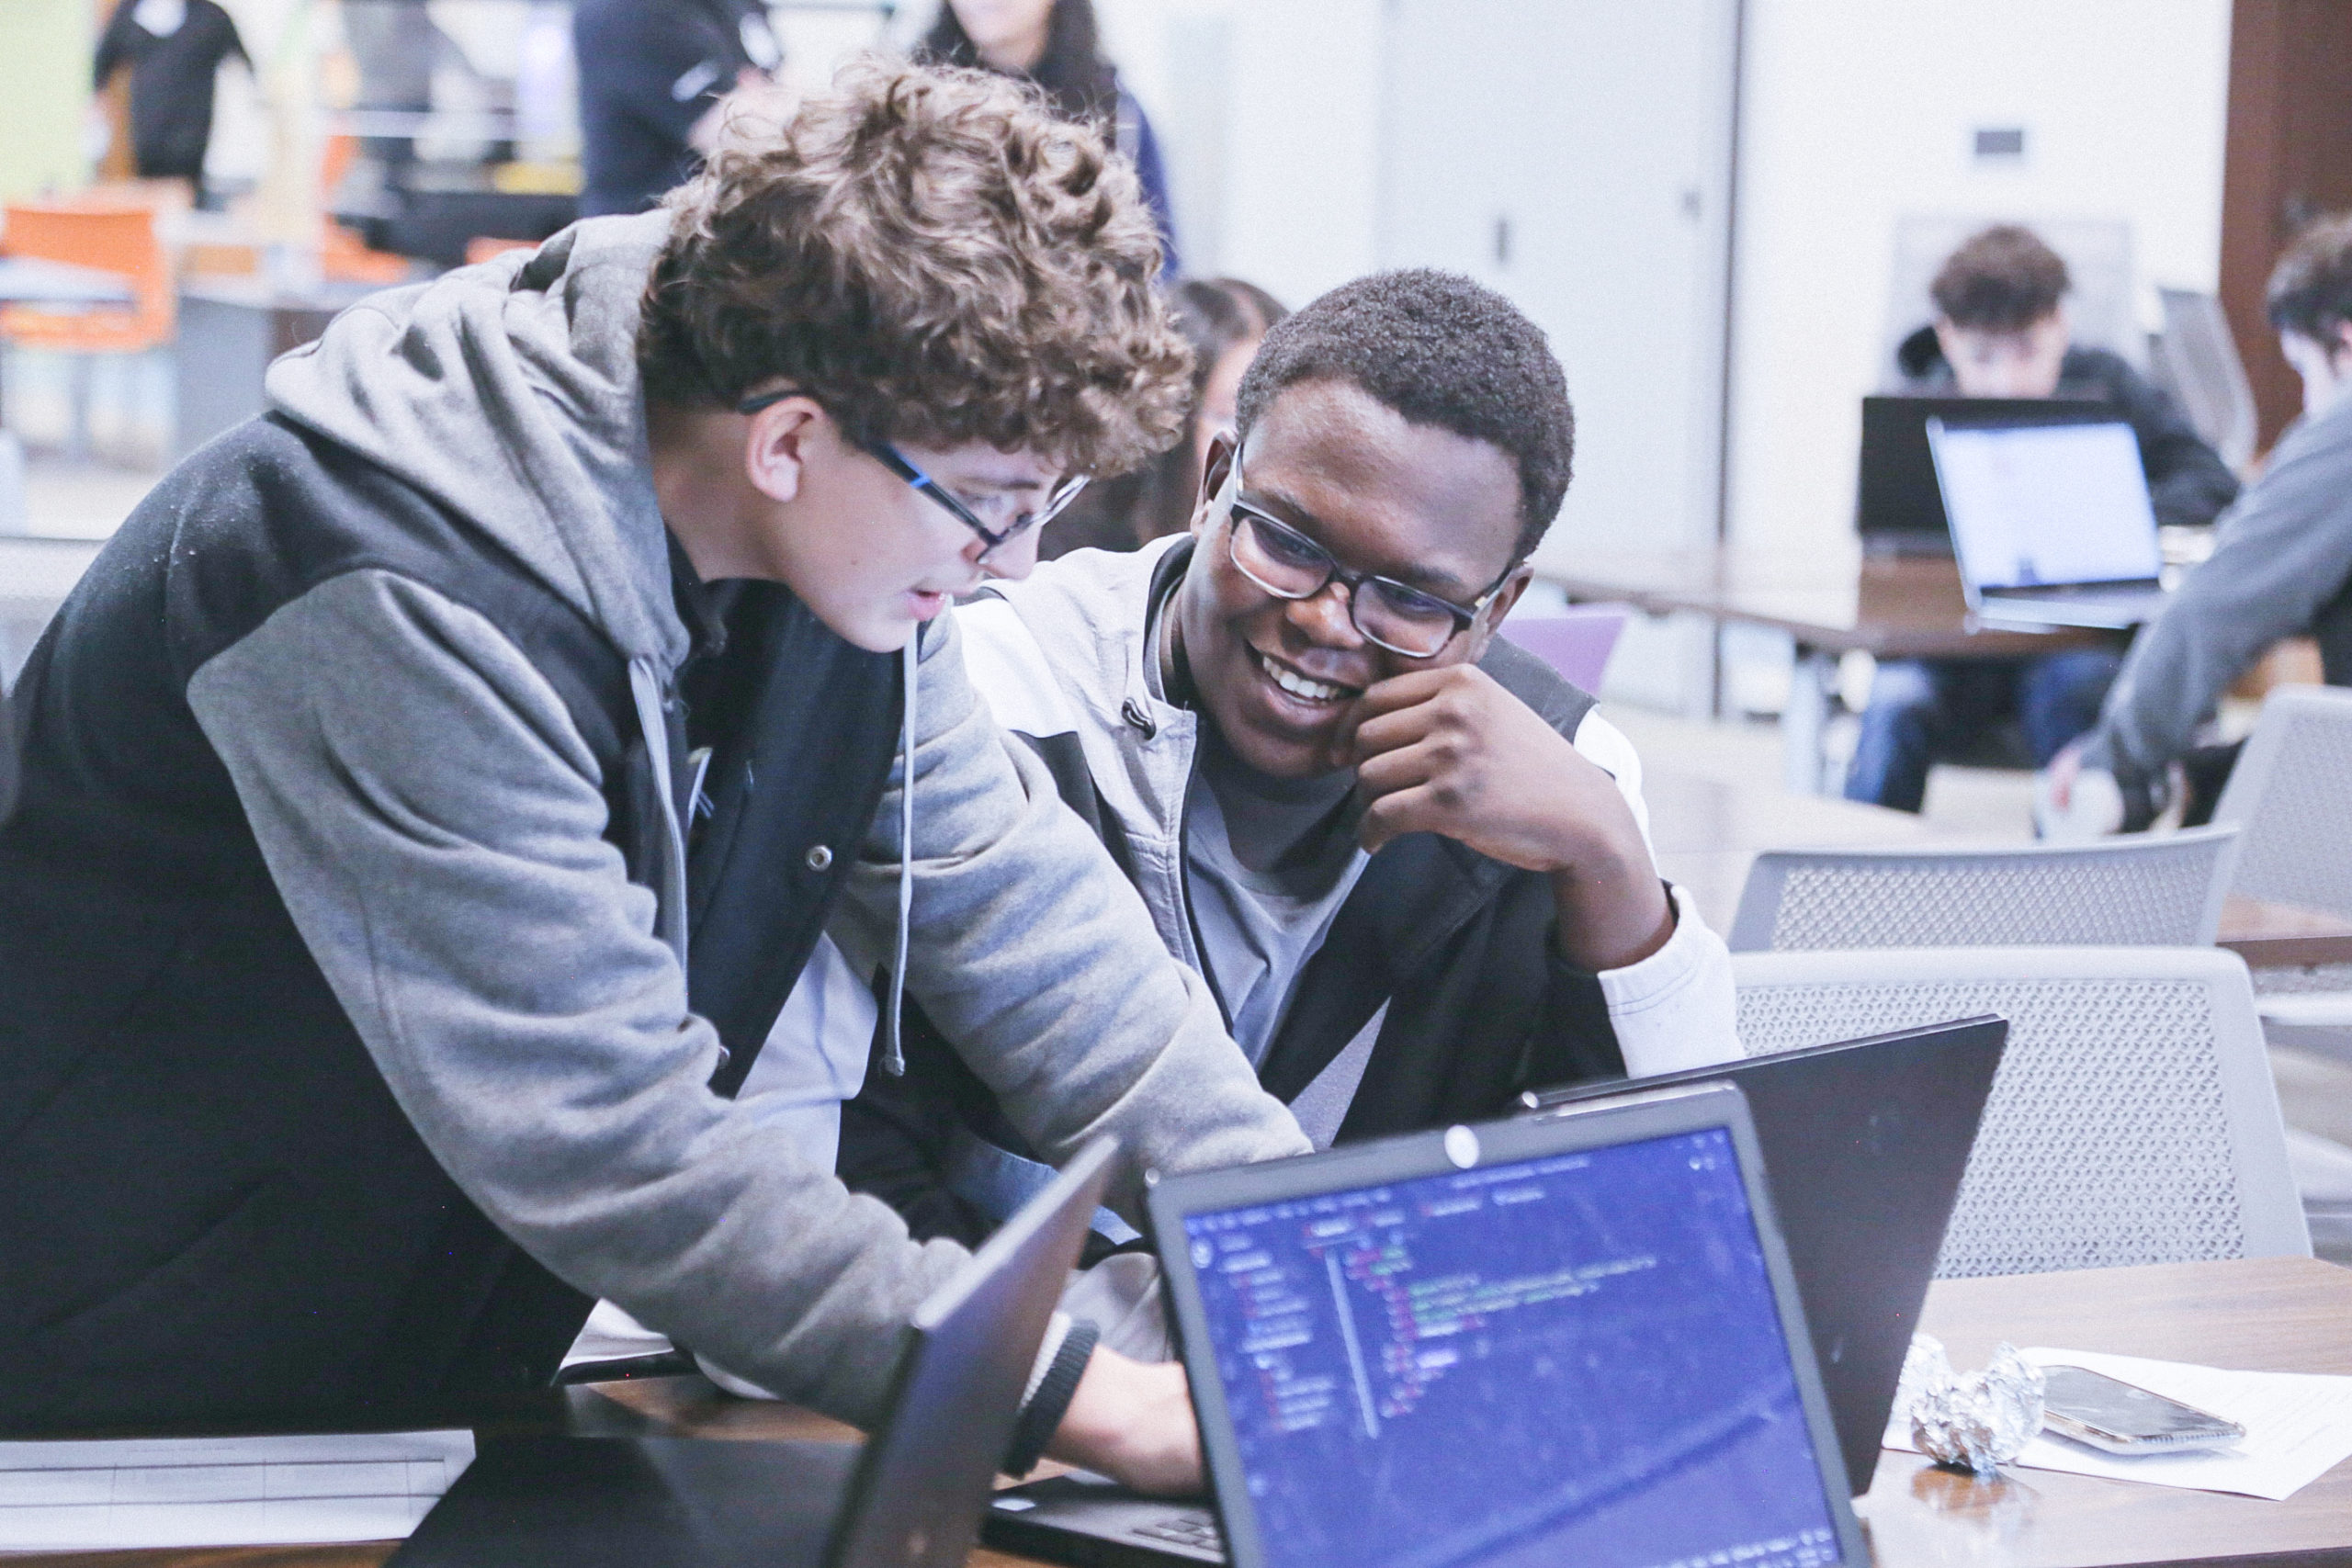 Emmanuel Ahonle (C2C '20) and Samuel Gunter (C2C '20) working together on their technical project at our first Hackathon prepping for Demo Day!